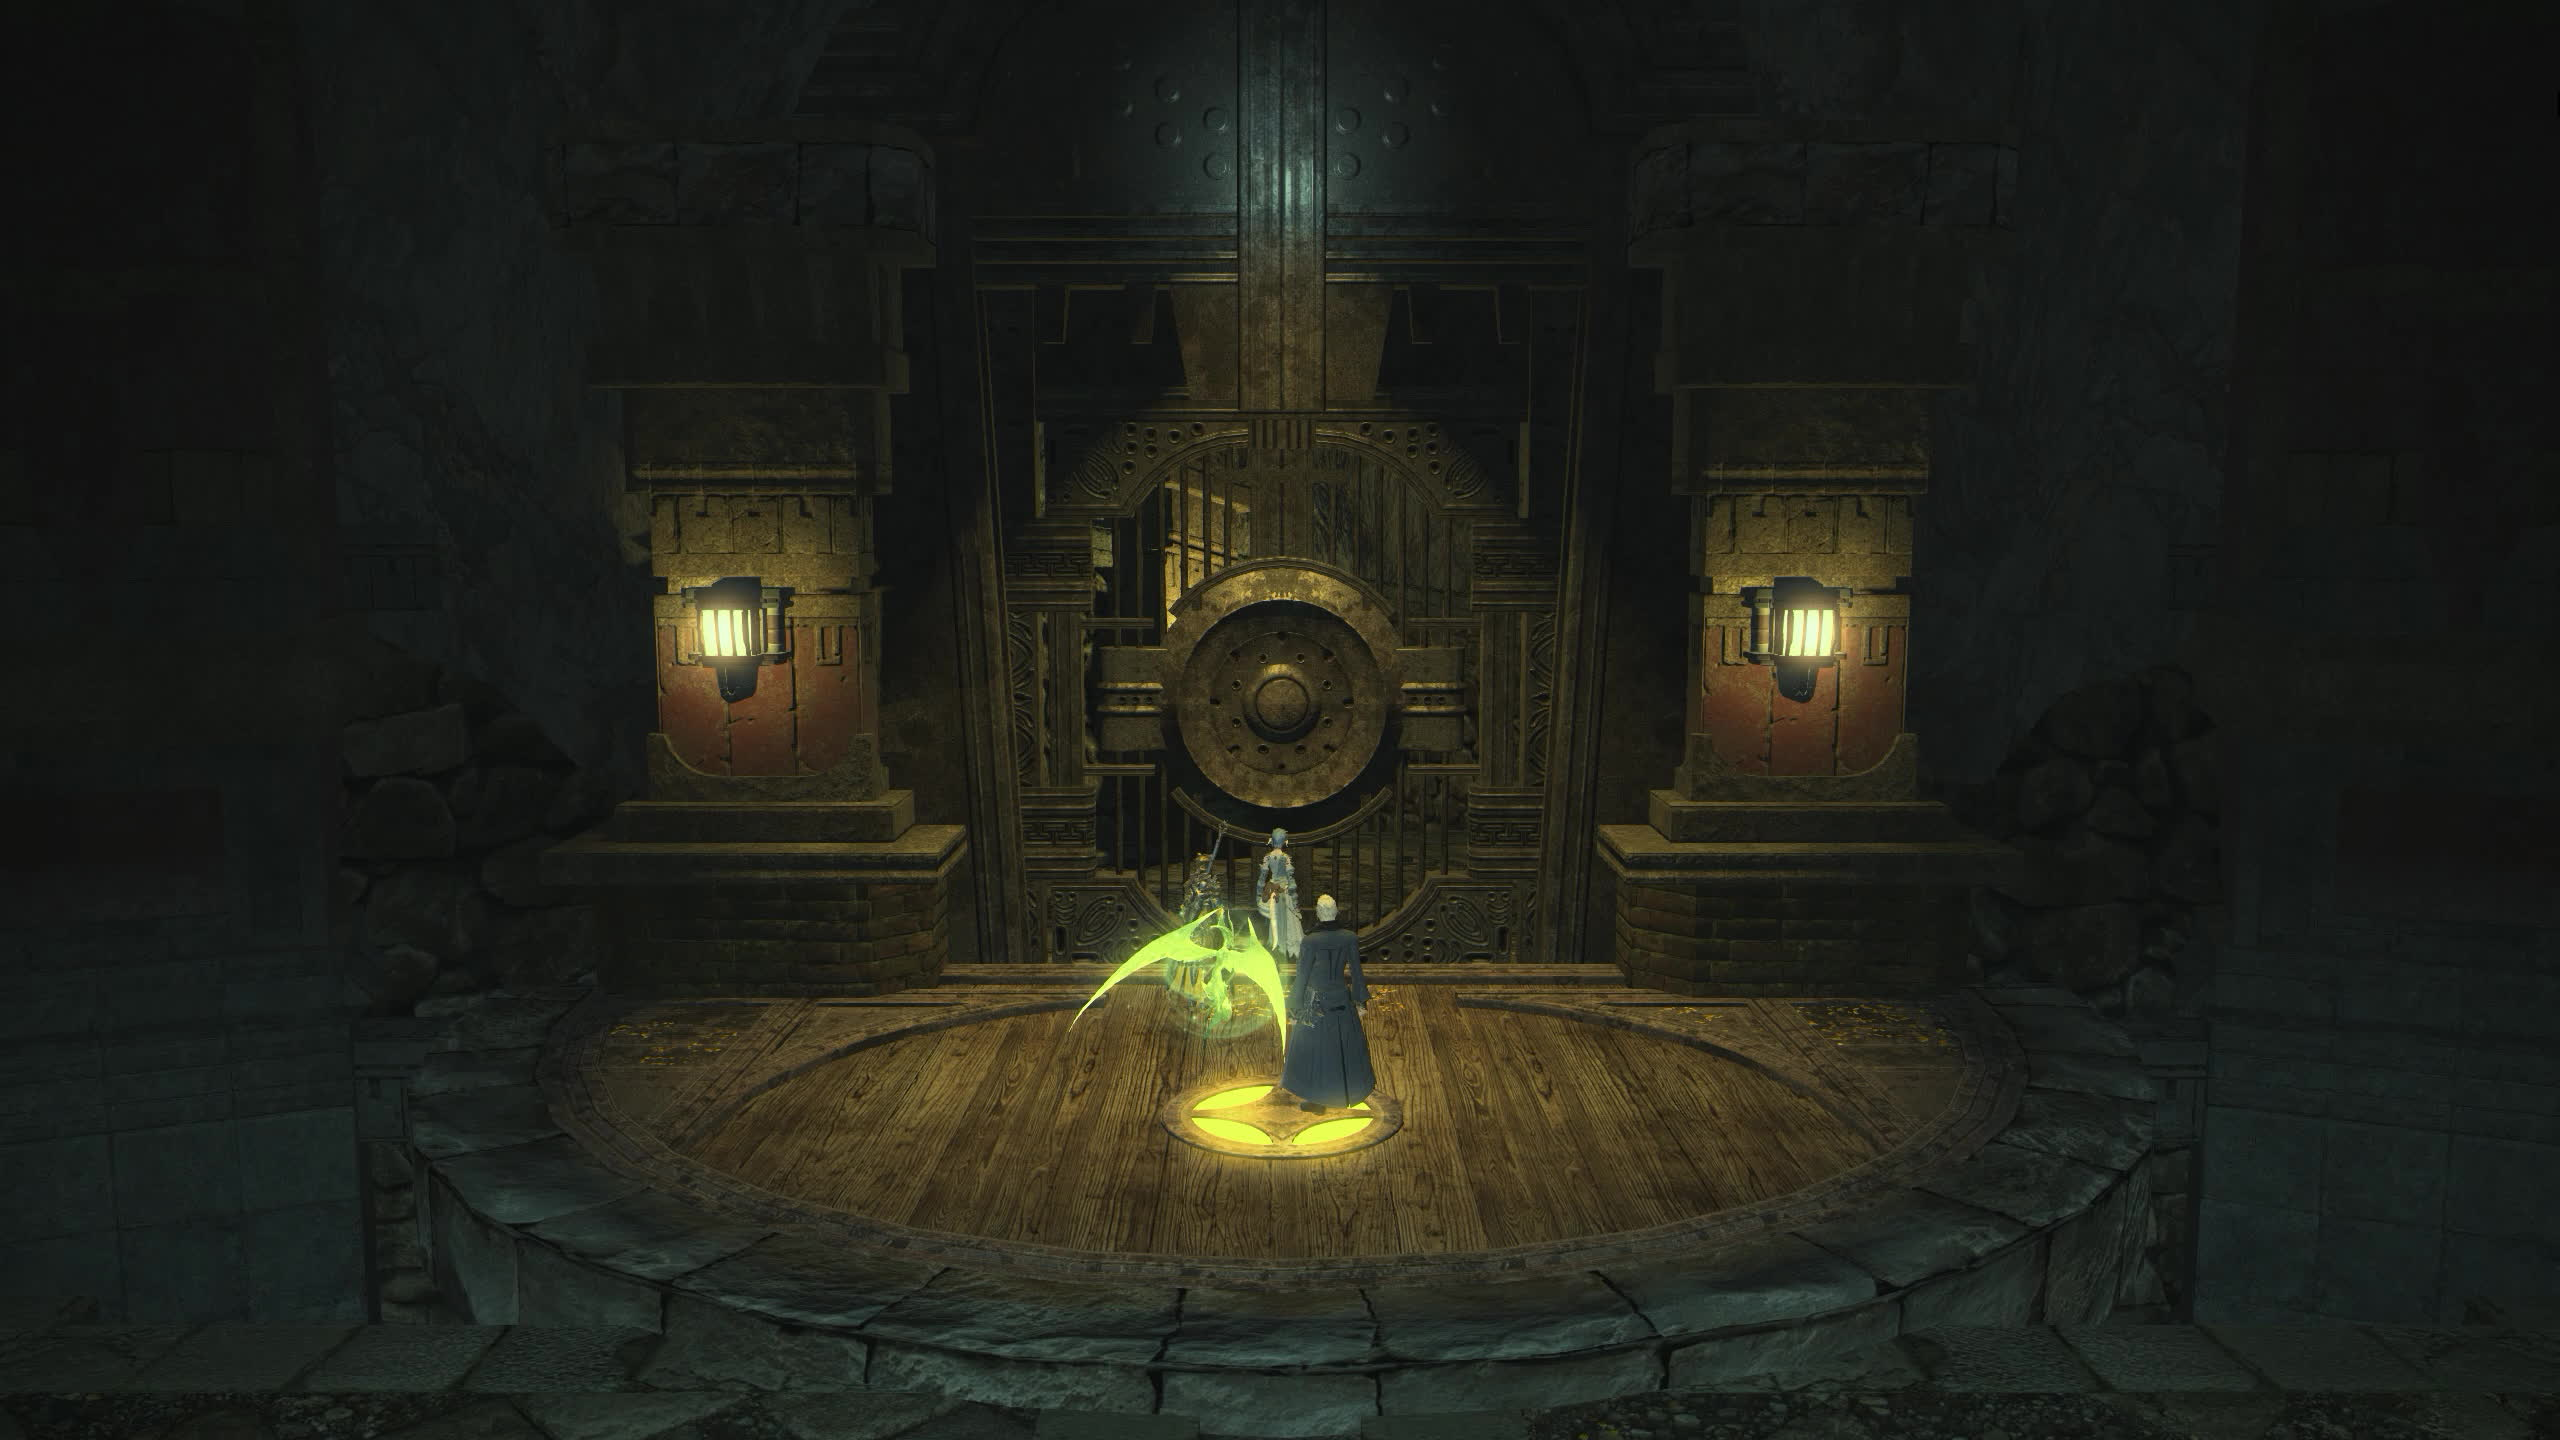 Ffxiv News Gifs Search | Search & Share on Homdor